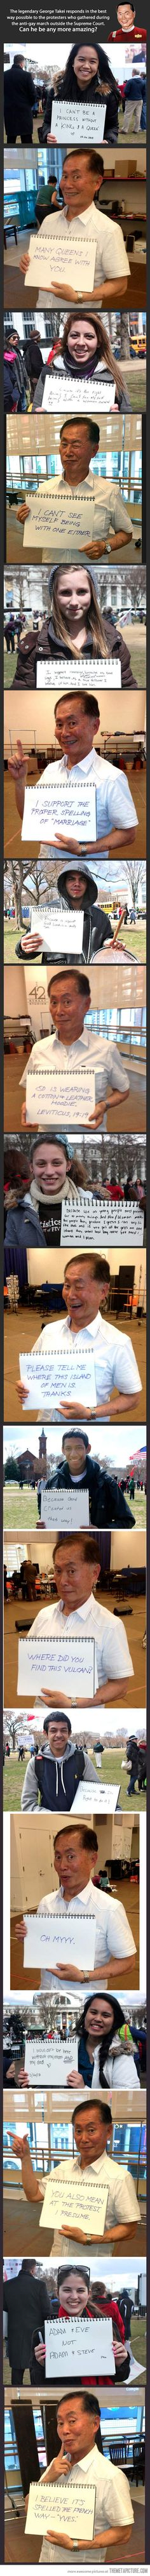 George Takei being awesome